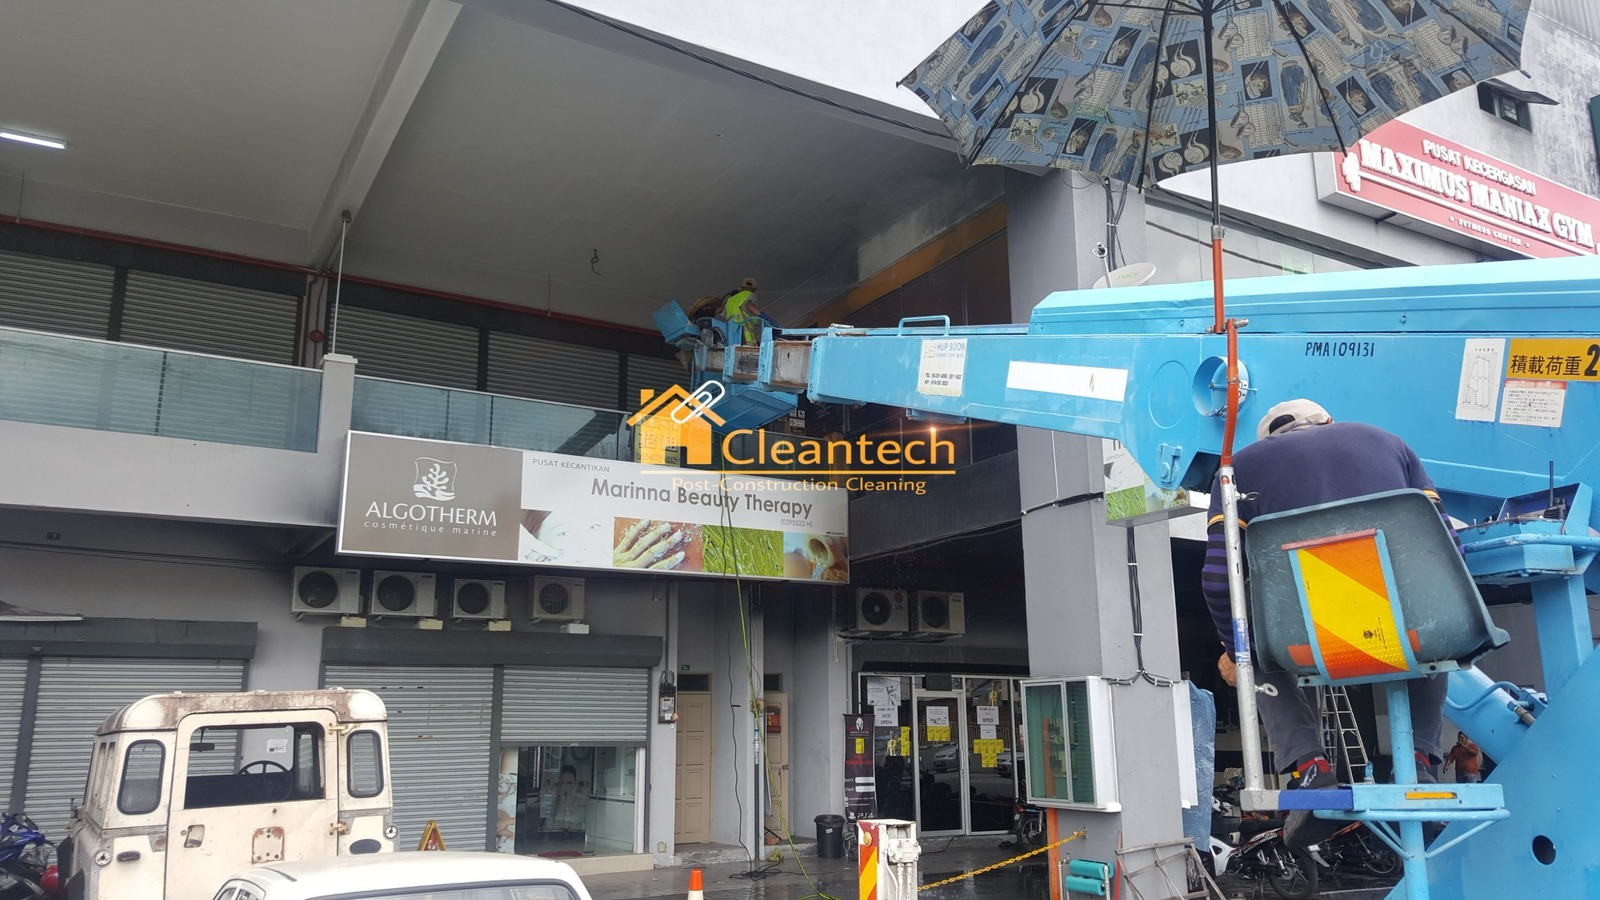 office chair penang leveling feet cleantech cleaning services 39ipoh 39 recommend my